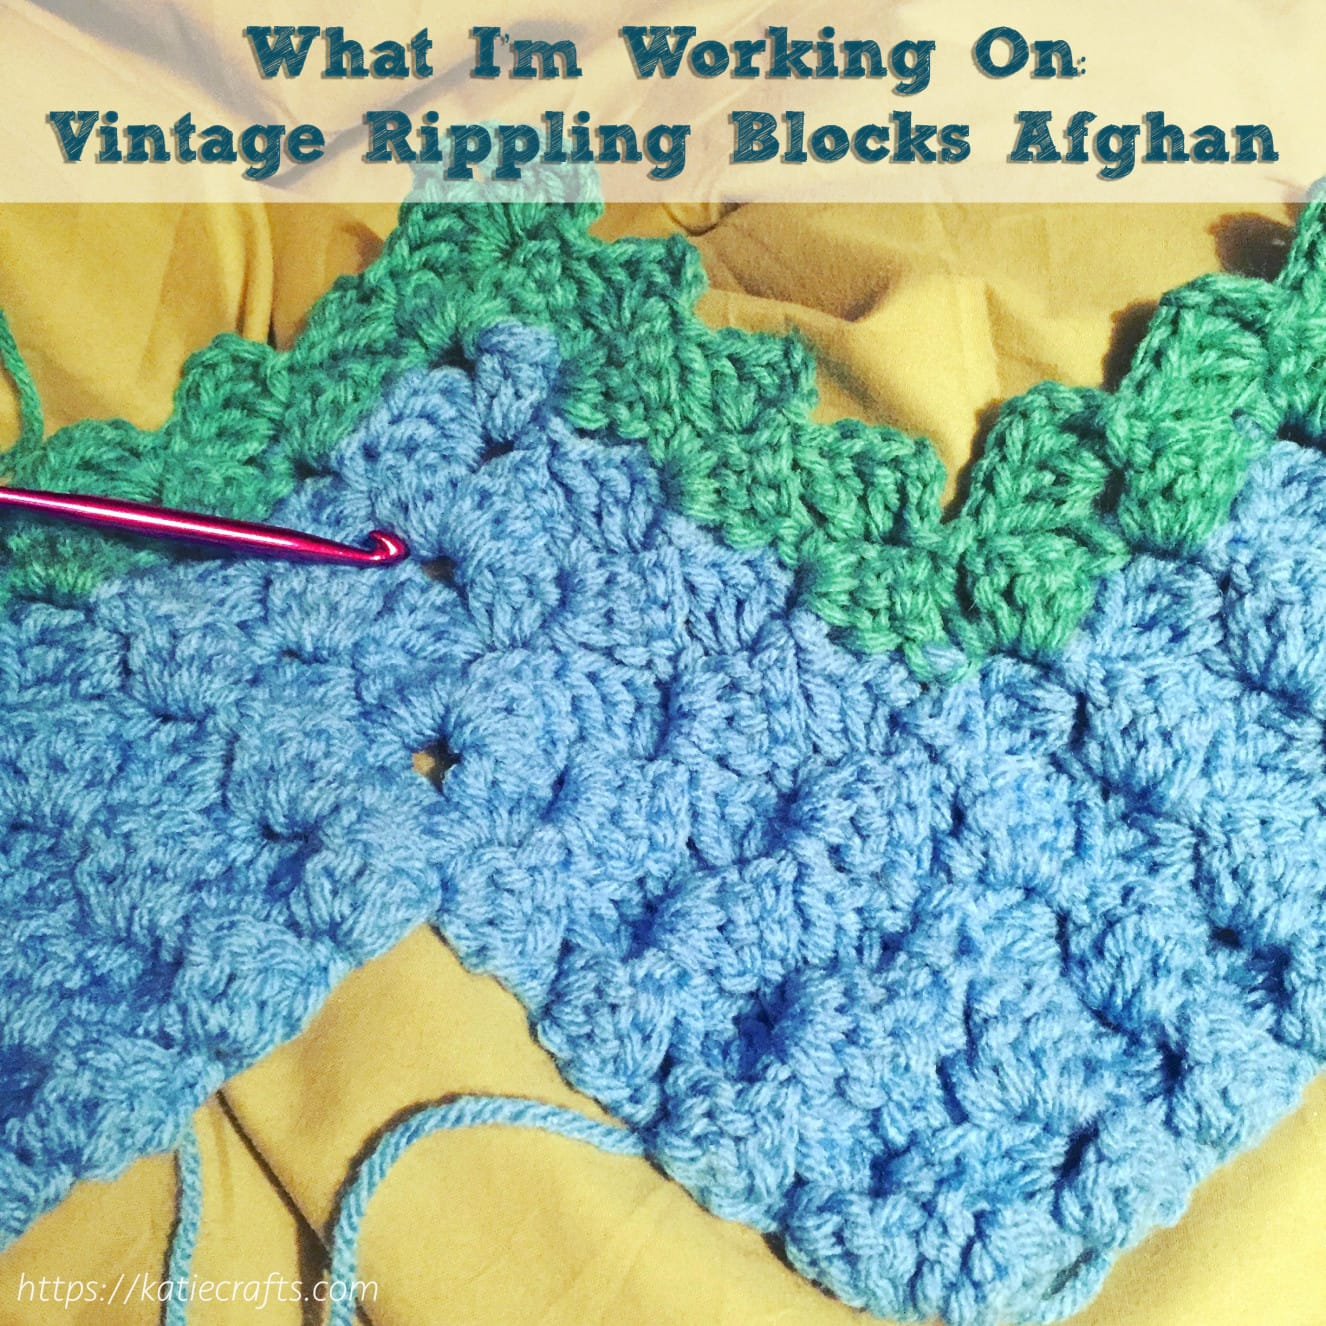 Vintage Rippling Blocks Afghan on Katie Crafts; https://www.katiecrafts.com